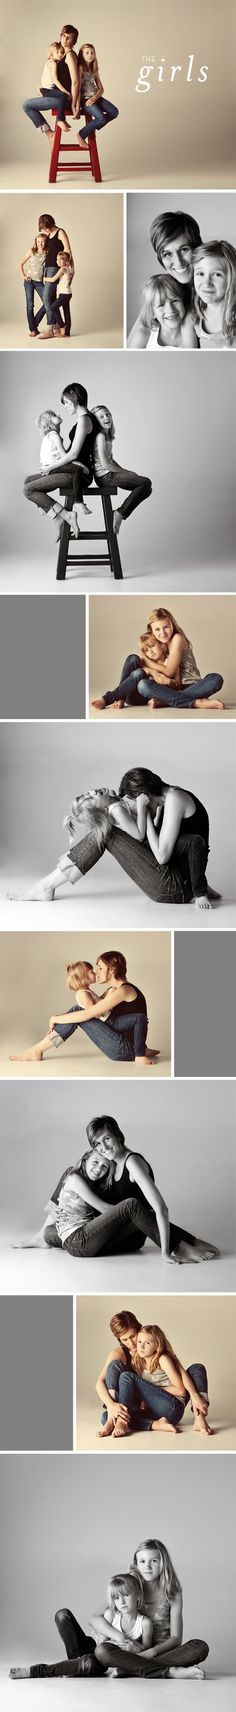 studio session.  Love the mother daughters portraits